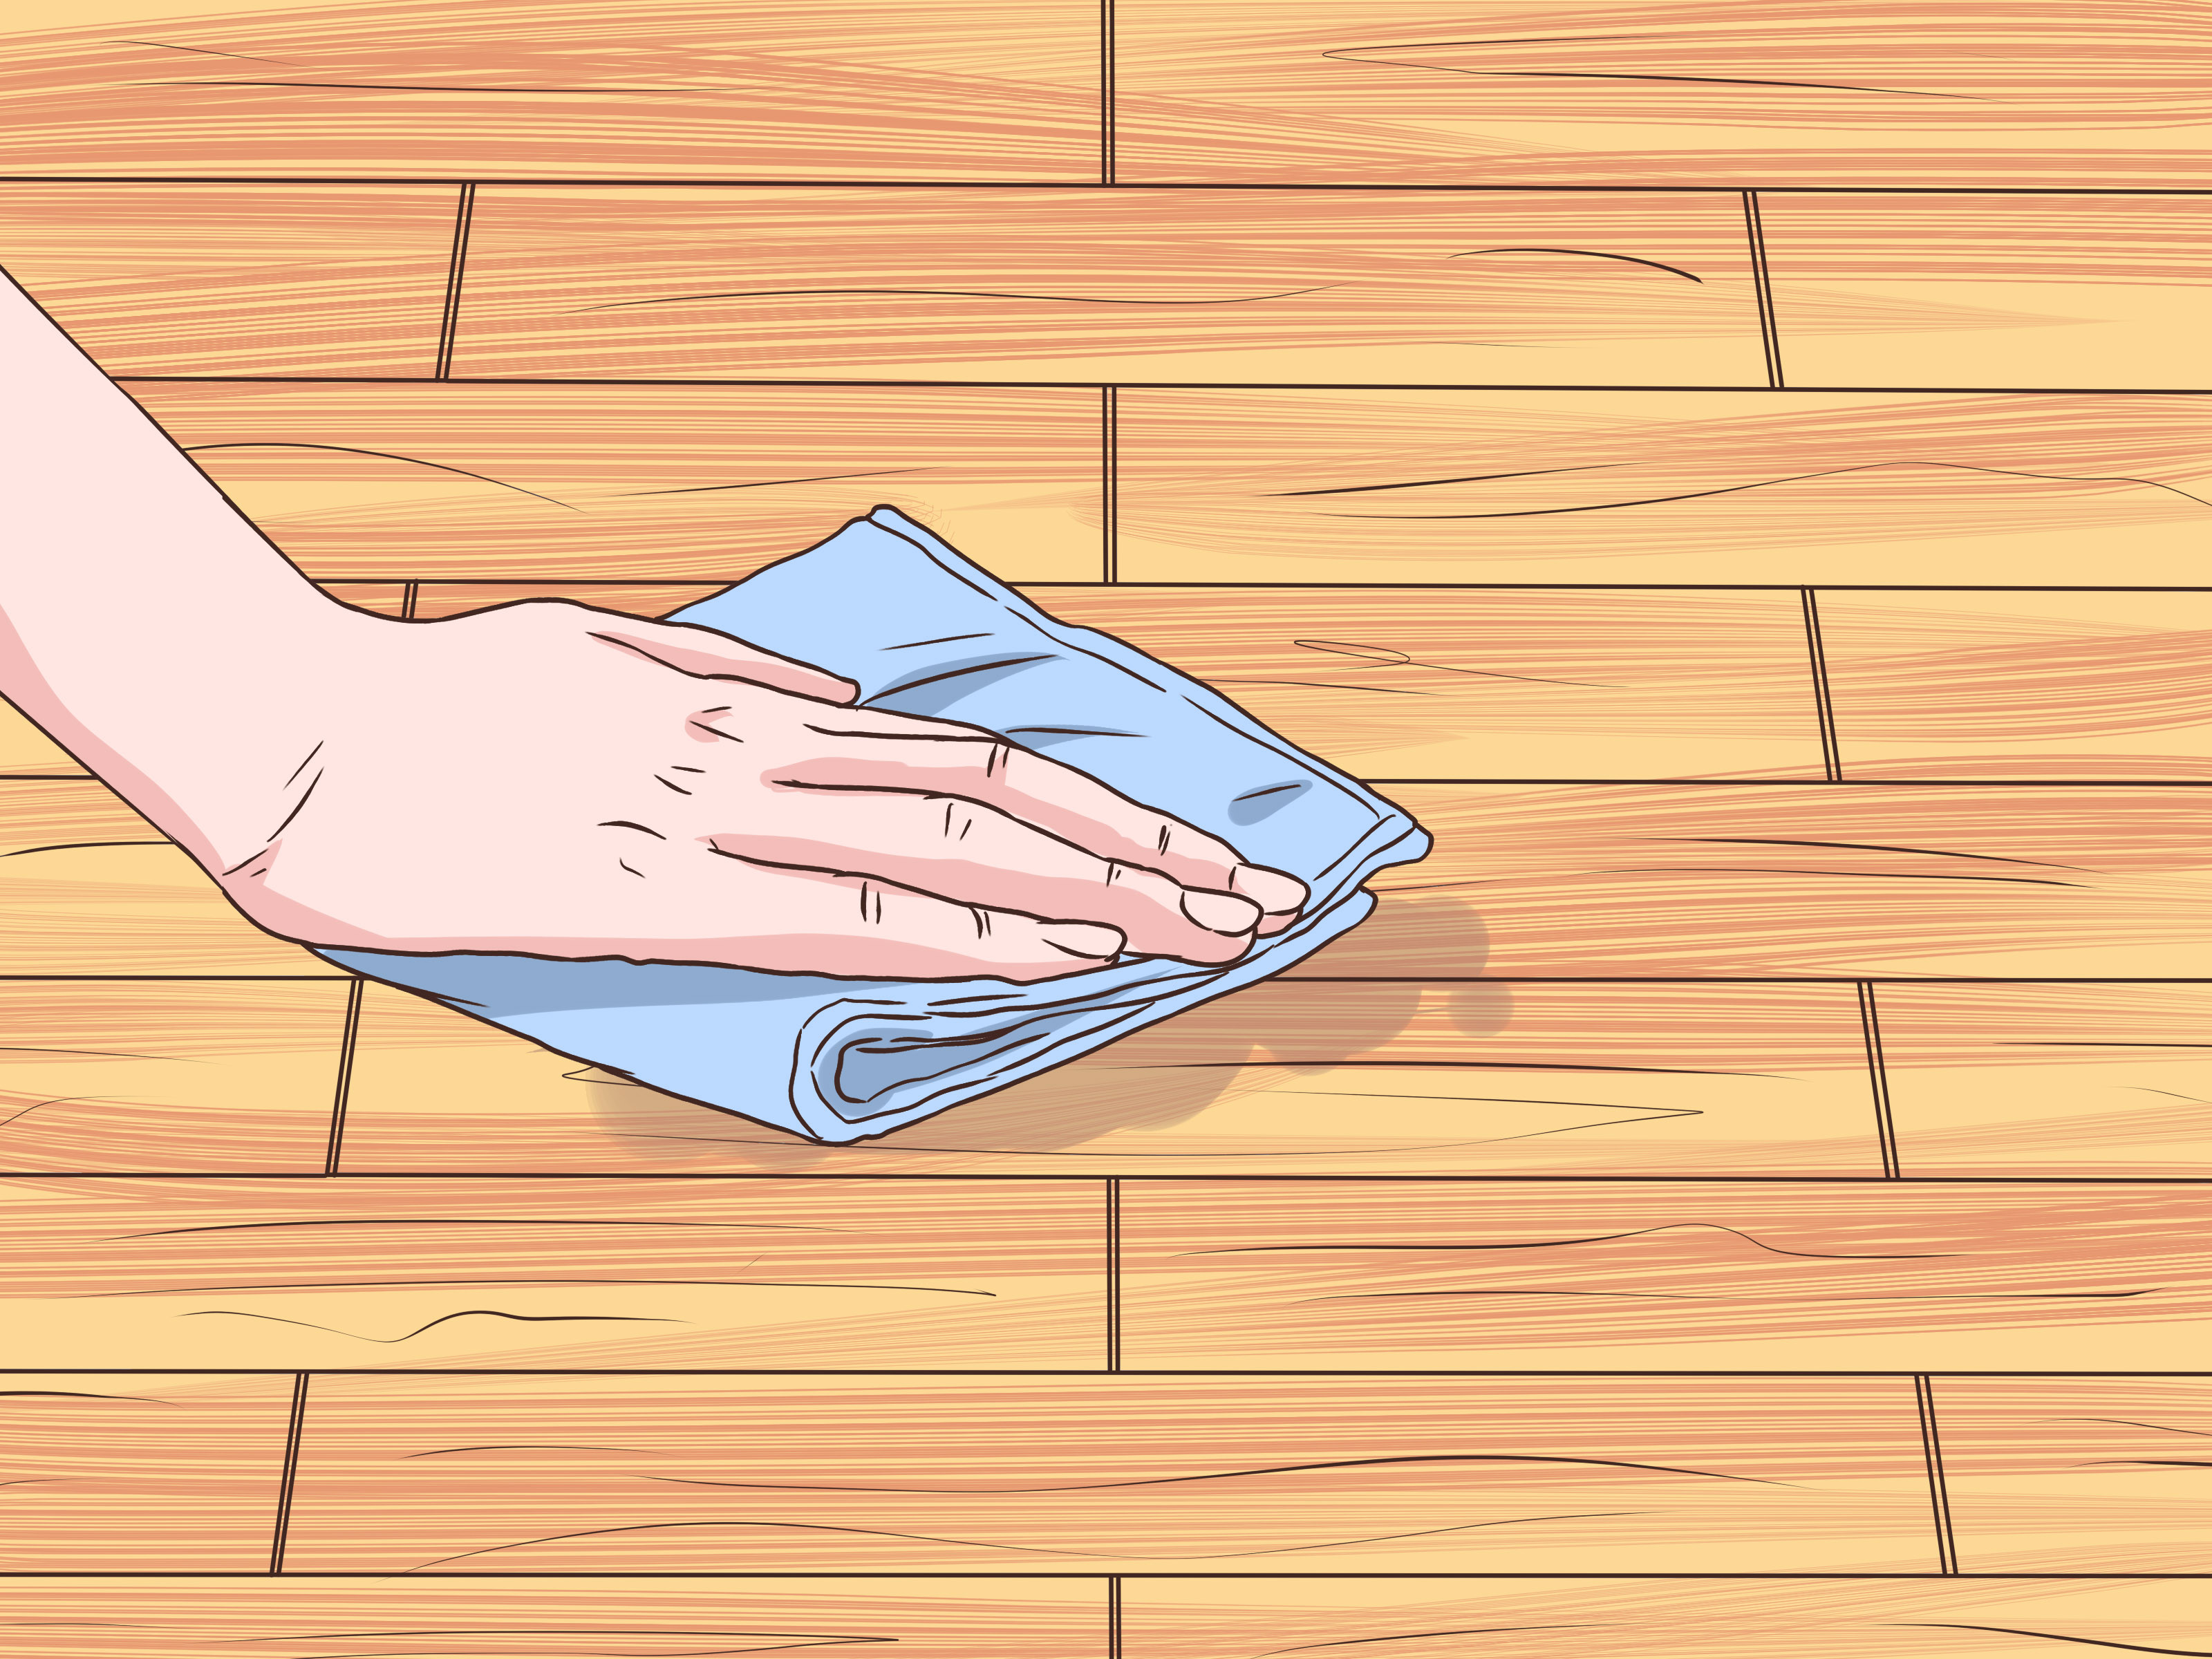 laminate flooring vs hardwood price of how to clean sticky hardwood floors 9 steps with pictures in clean sticky hardwood floors step 9